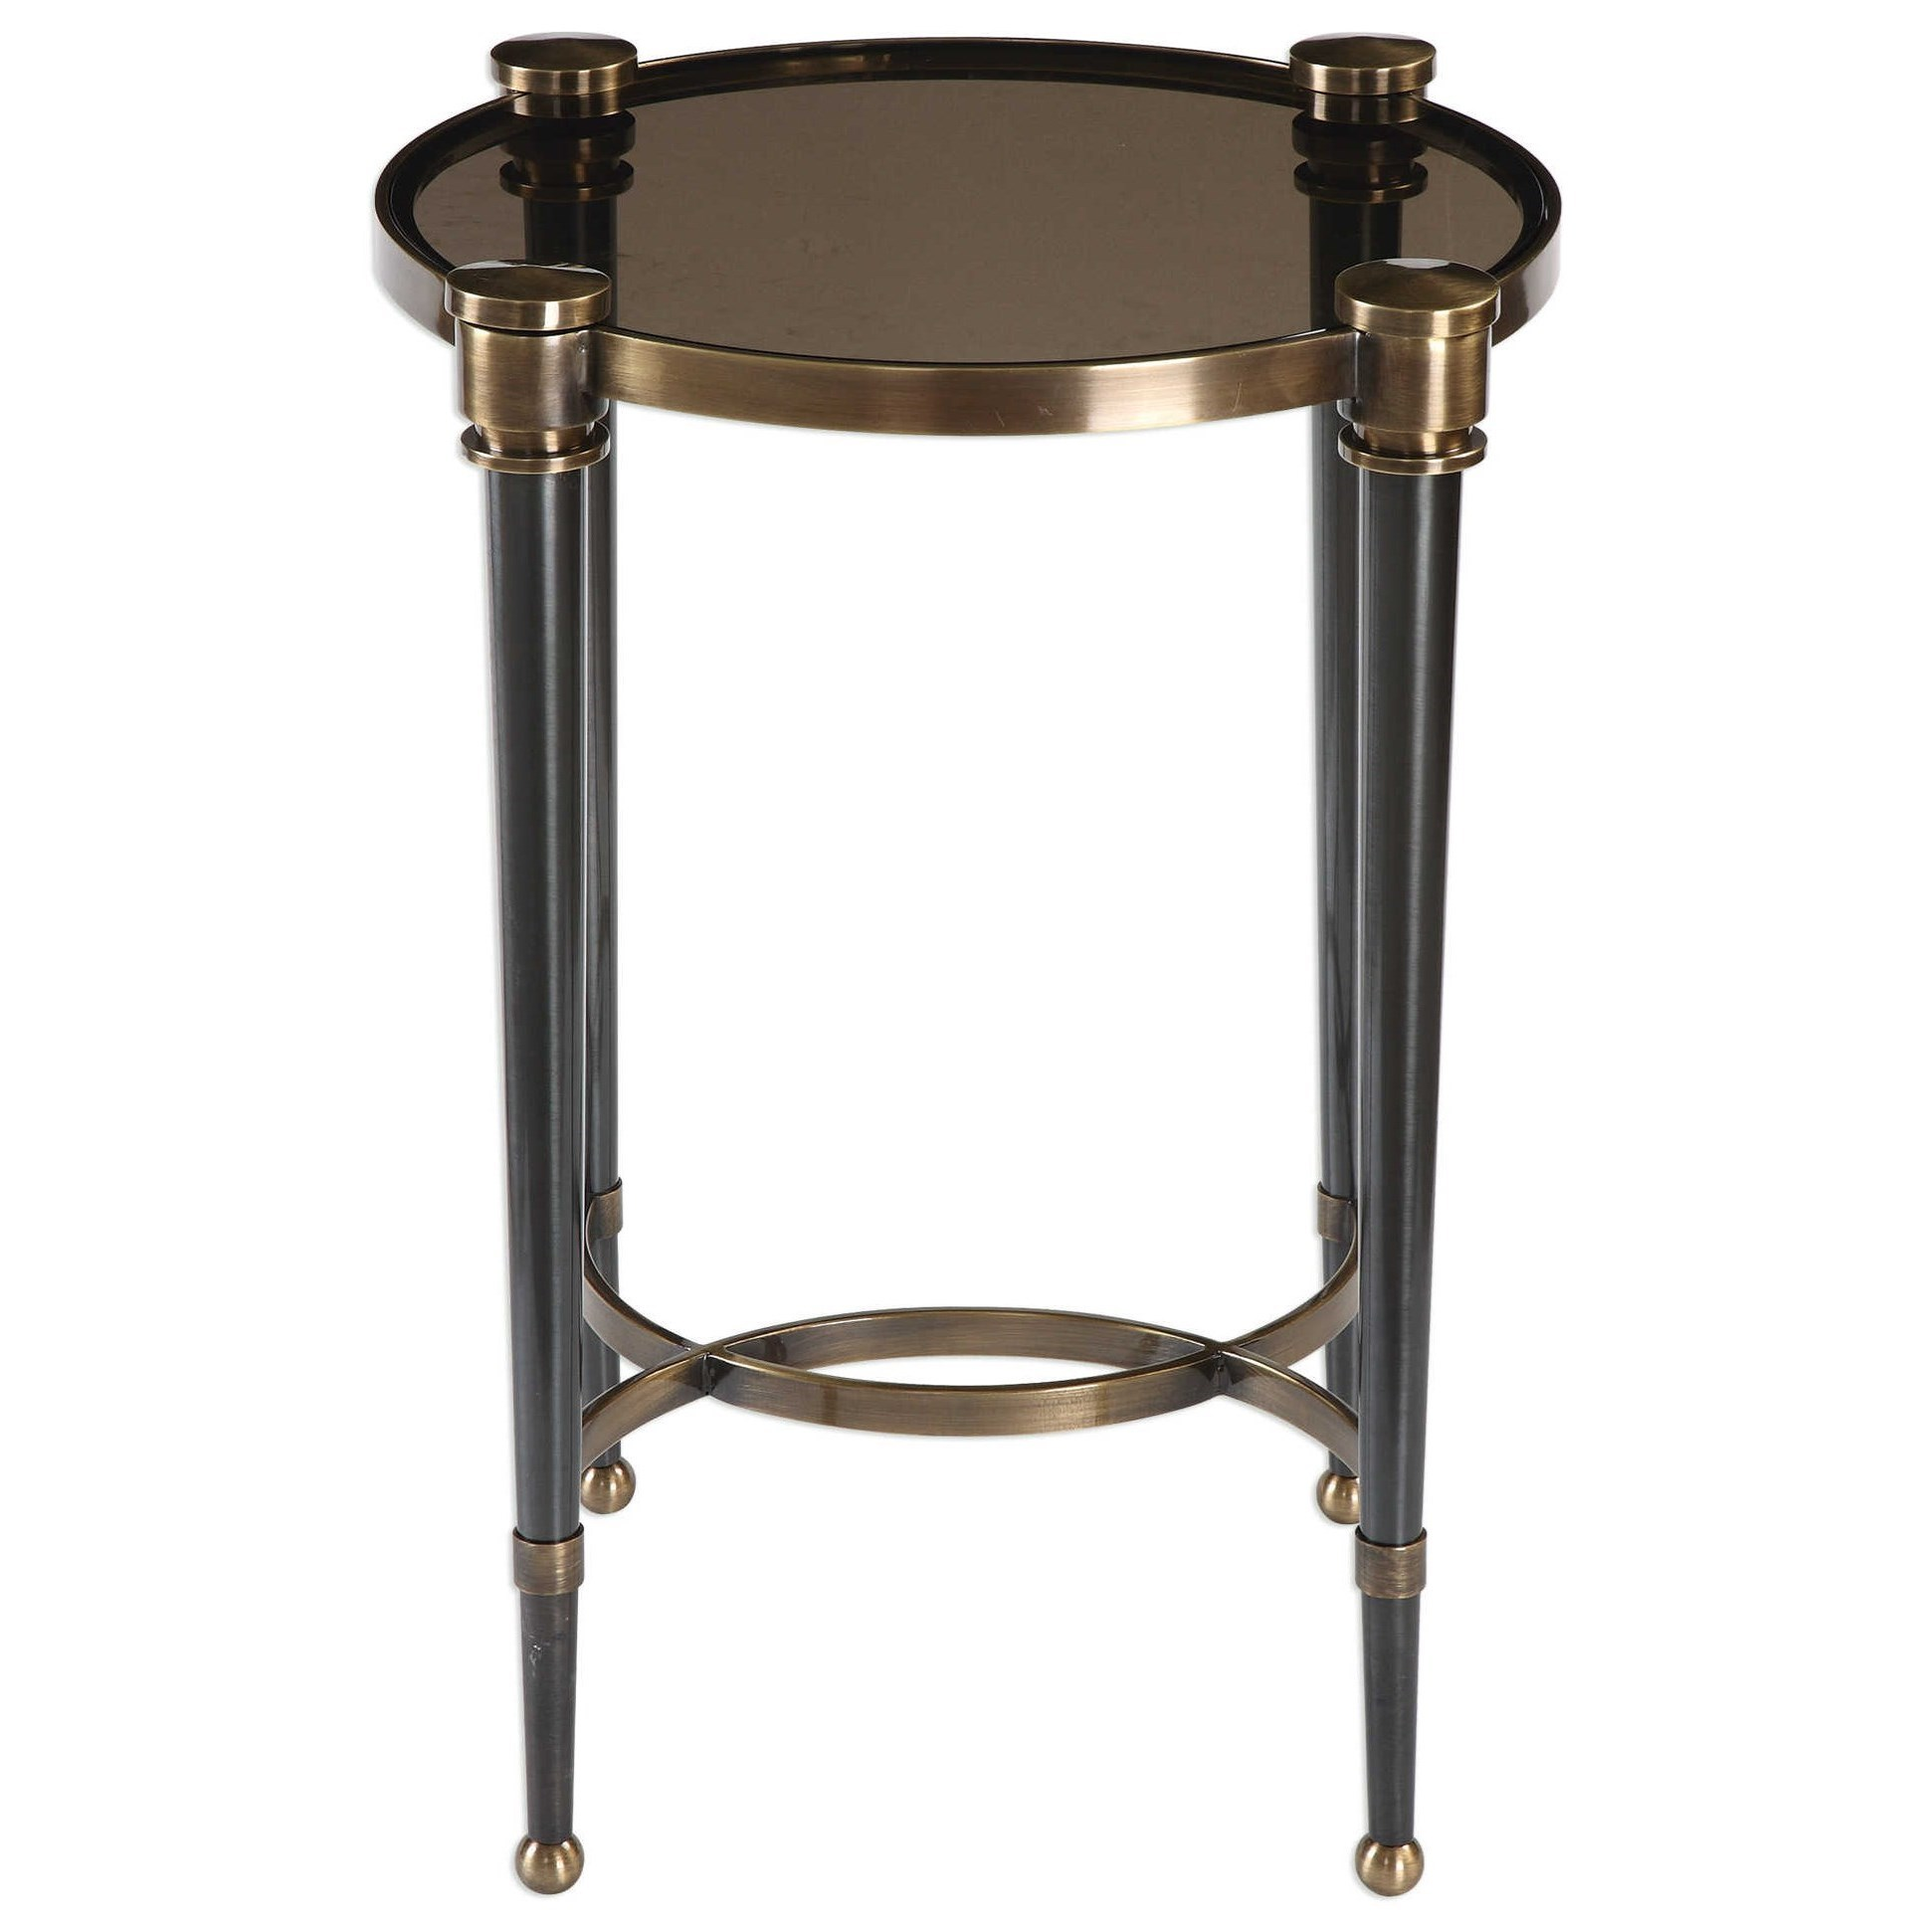 Accent Furniture - Occasional Tables Thora Brushed Black Accent Table by Uttermost at Upper Room Home Furnishings